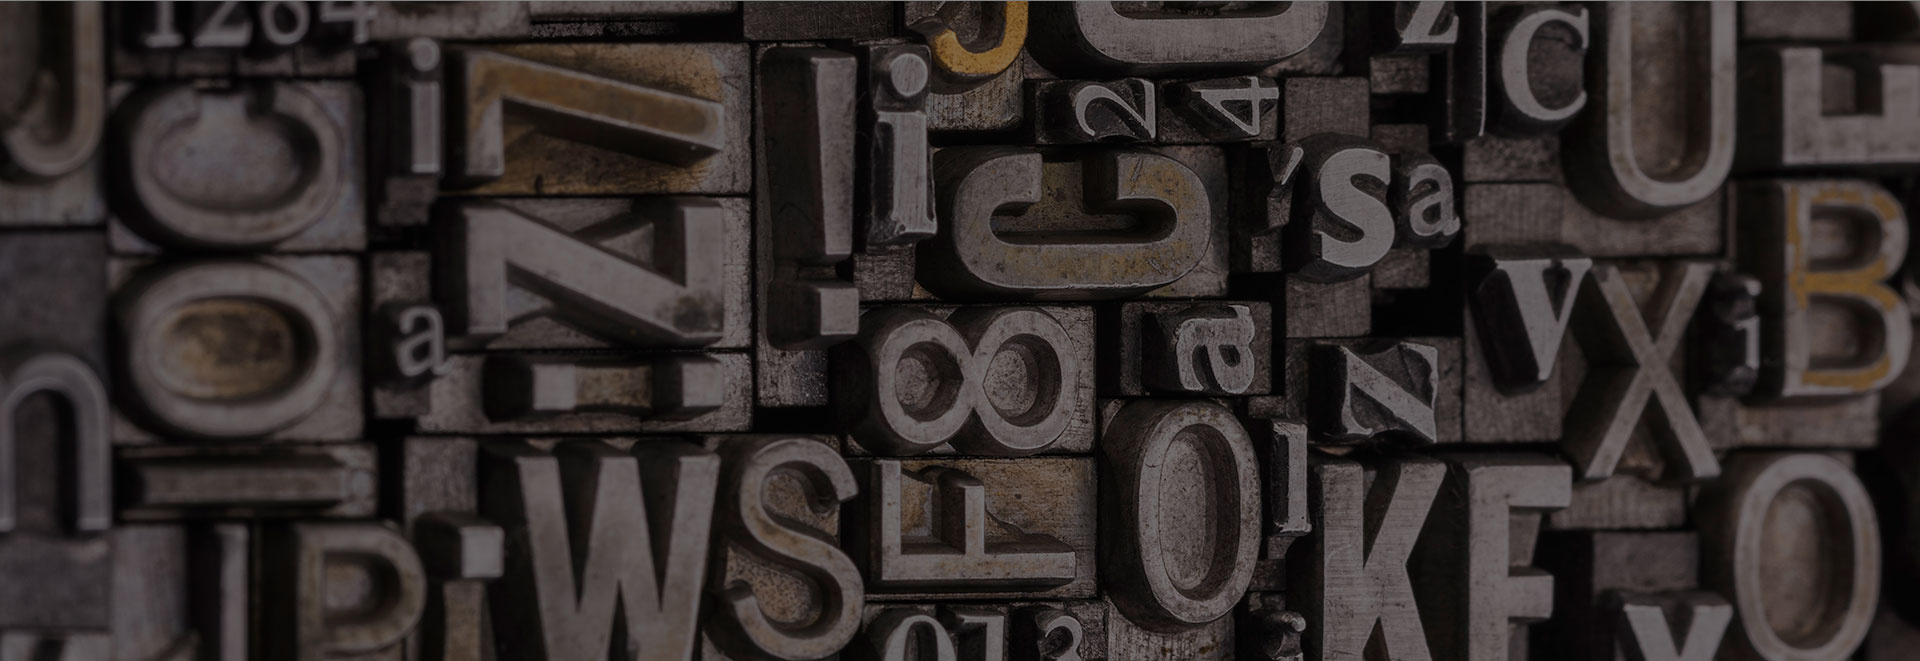 Make It Timeless With Print - Order Now